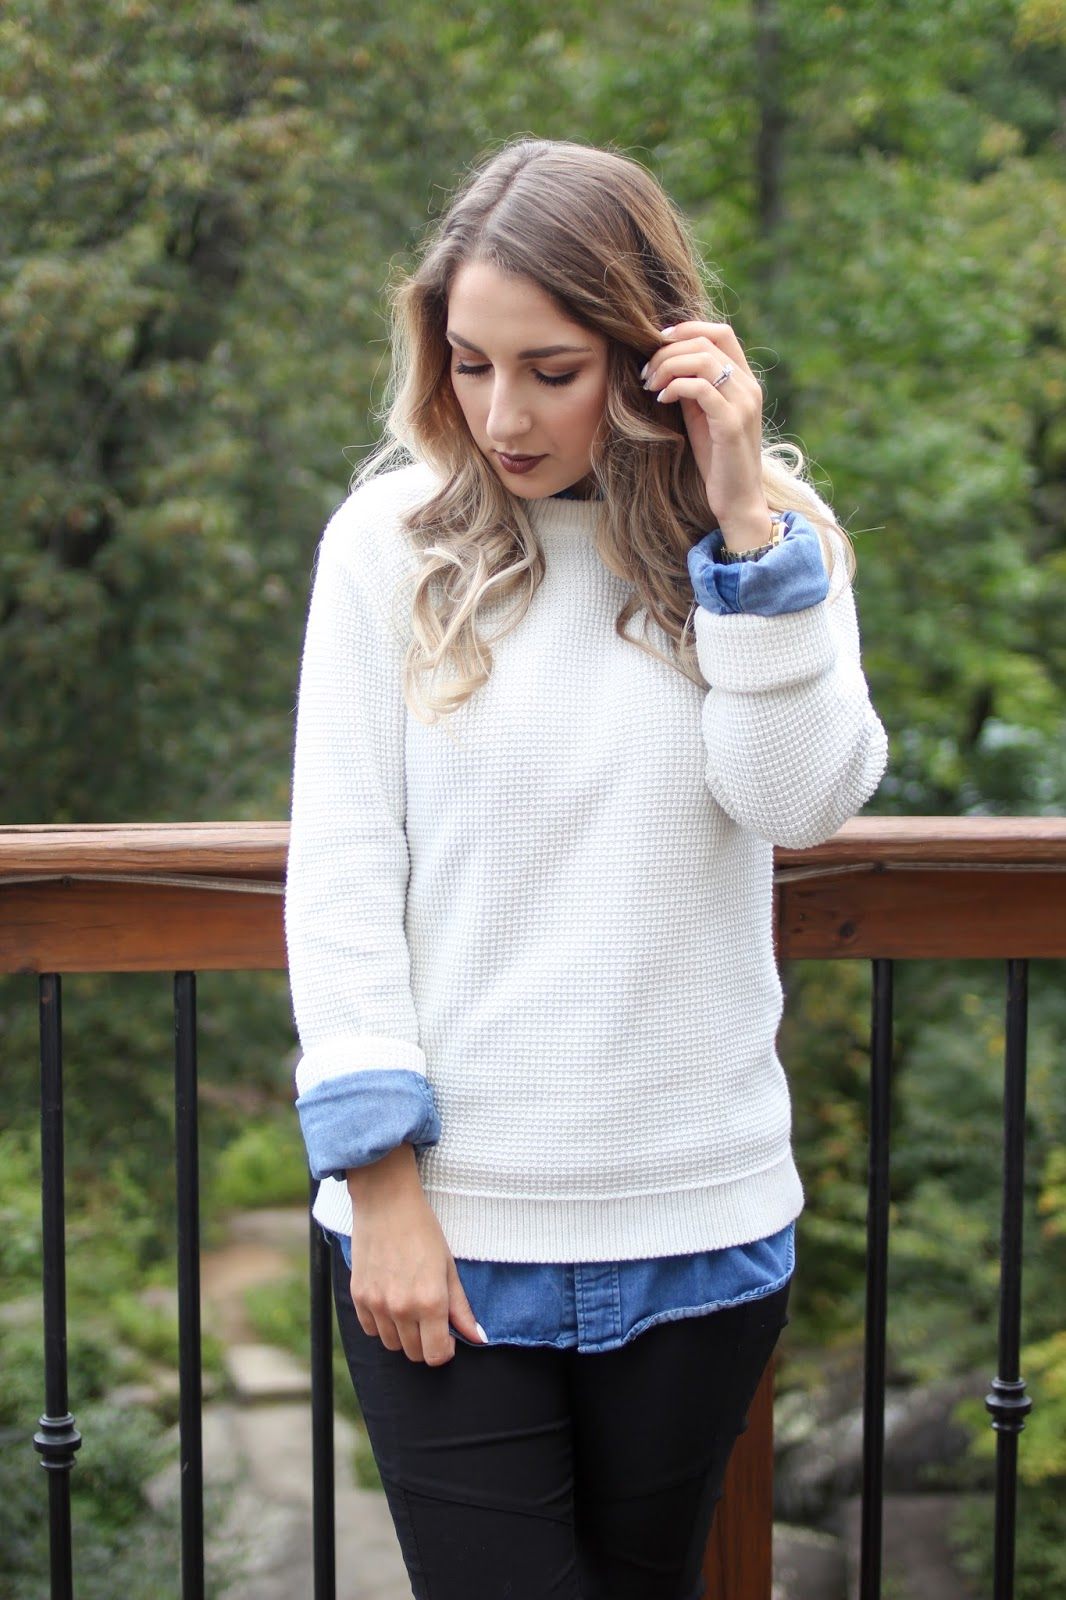 COZY LAYERED LOOK // WHITE SWEATER & DENIM TOP - A Classy Fashionista